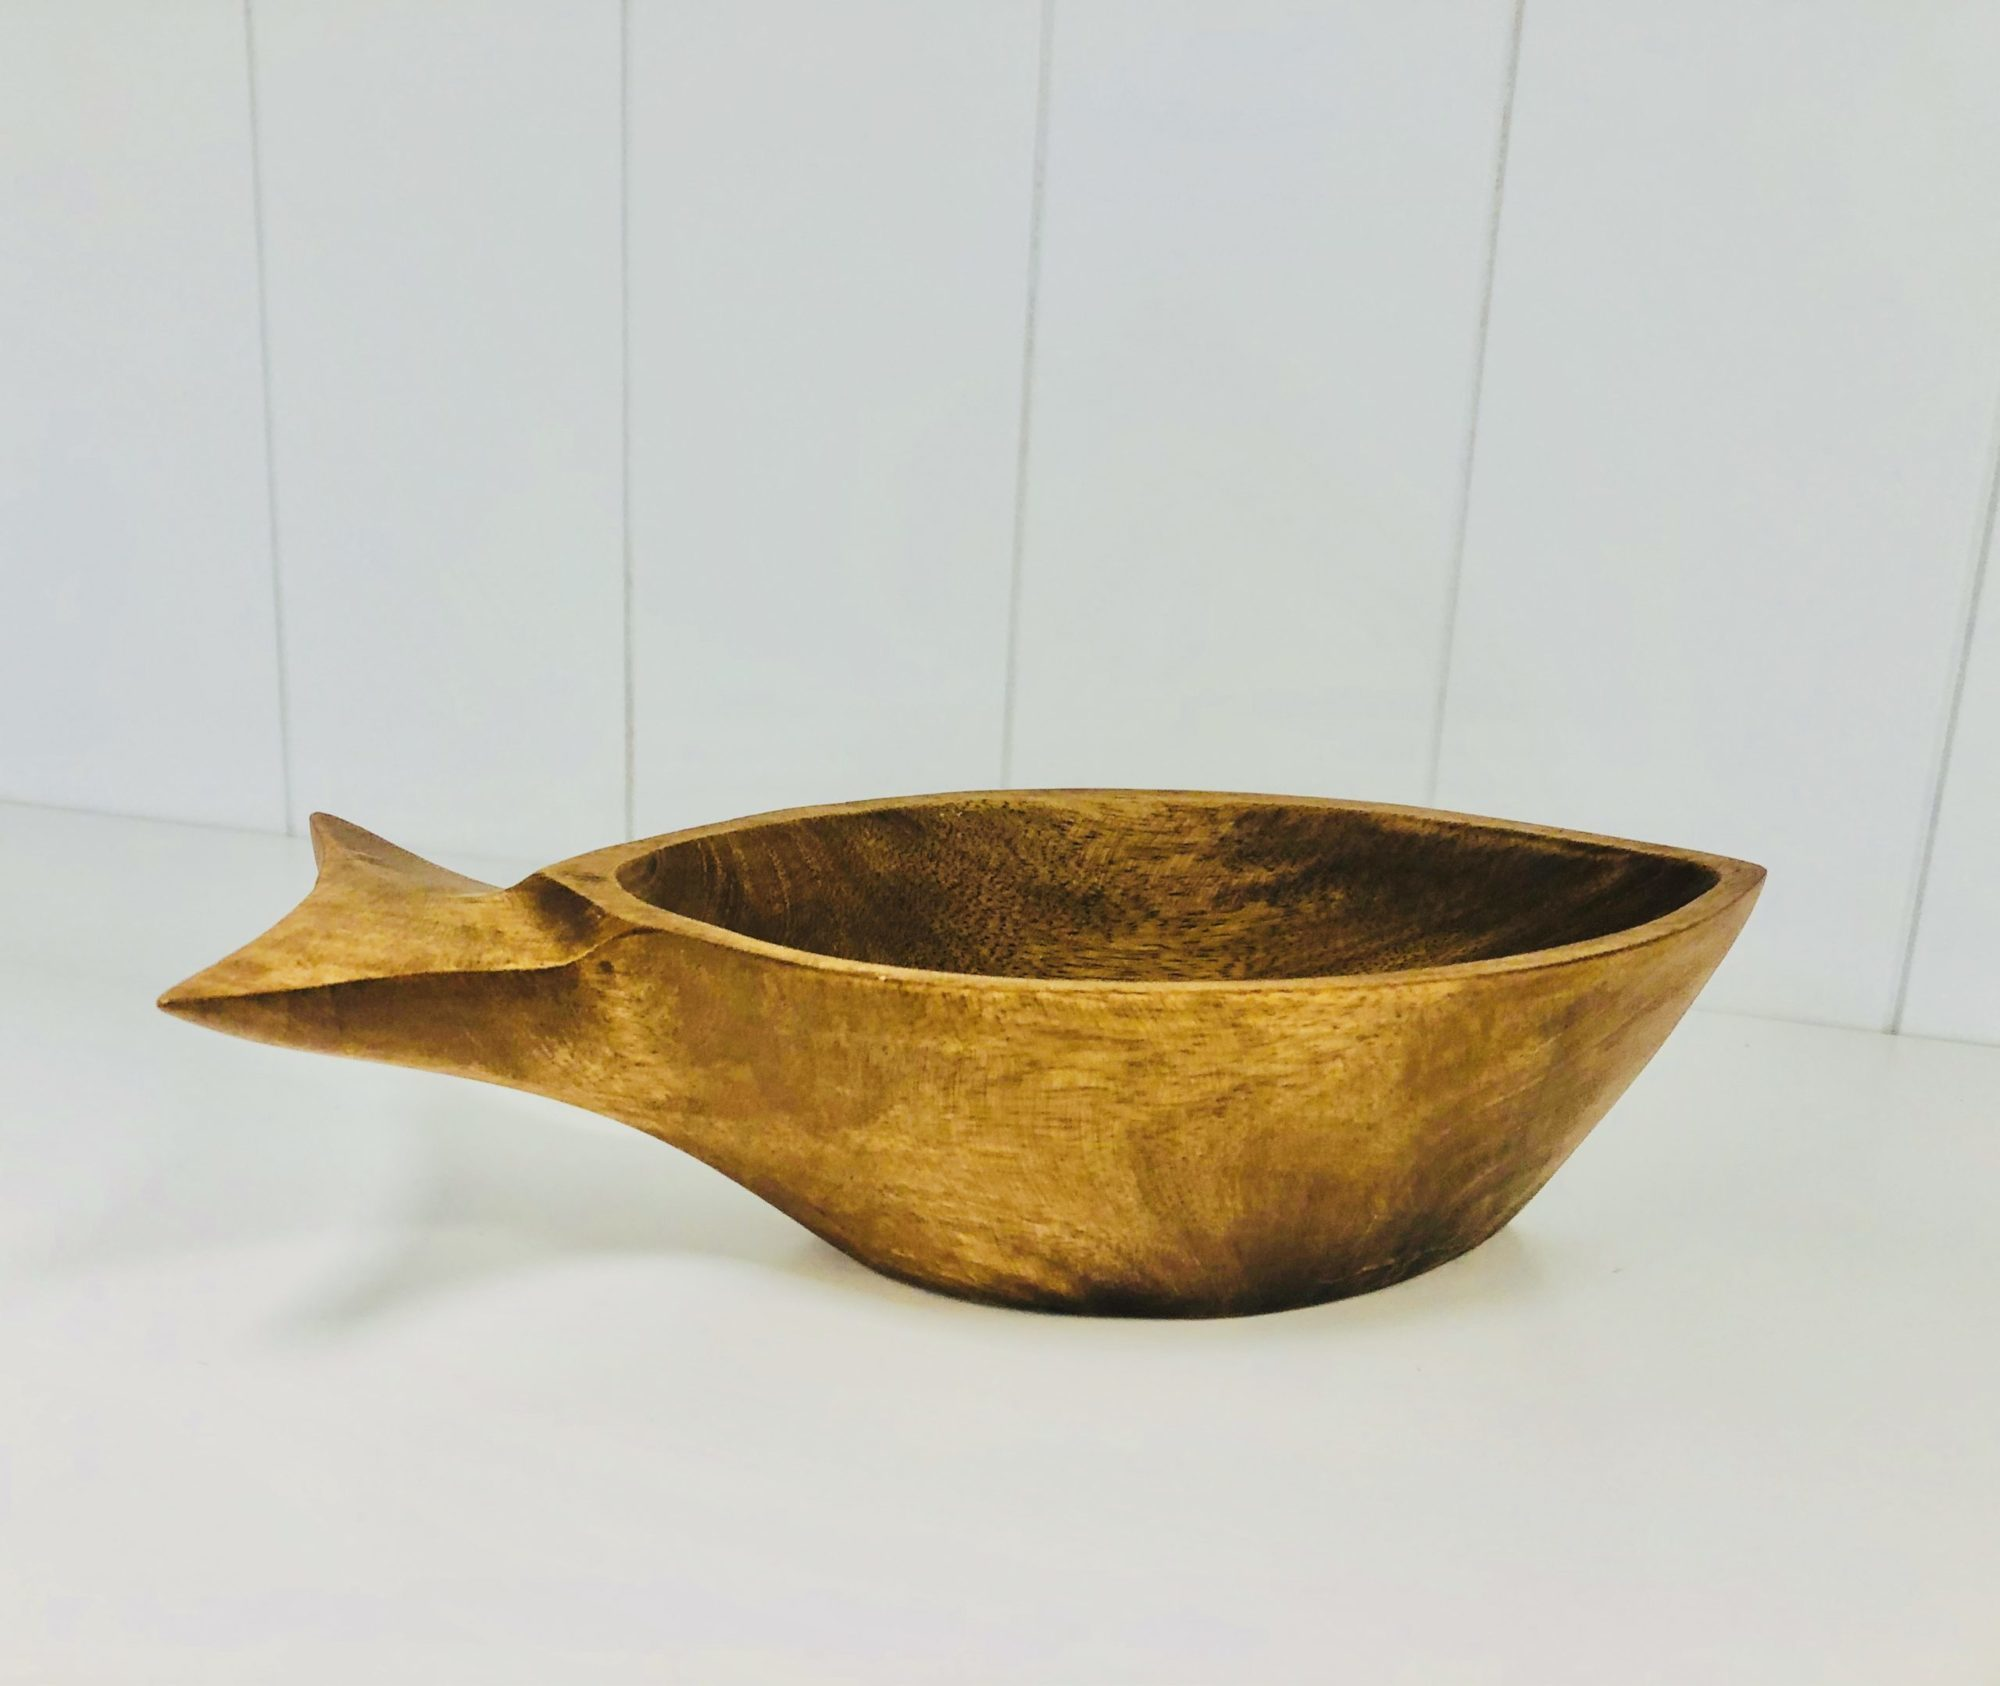 Small wooden fish shape bowl